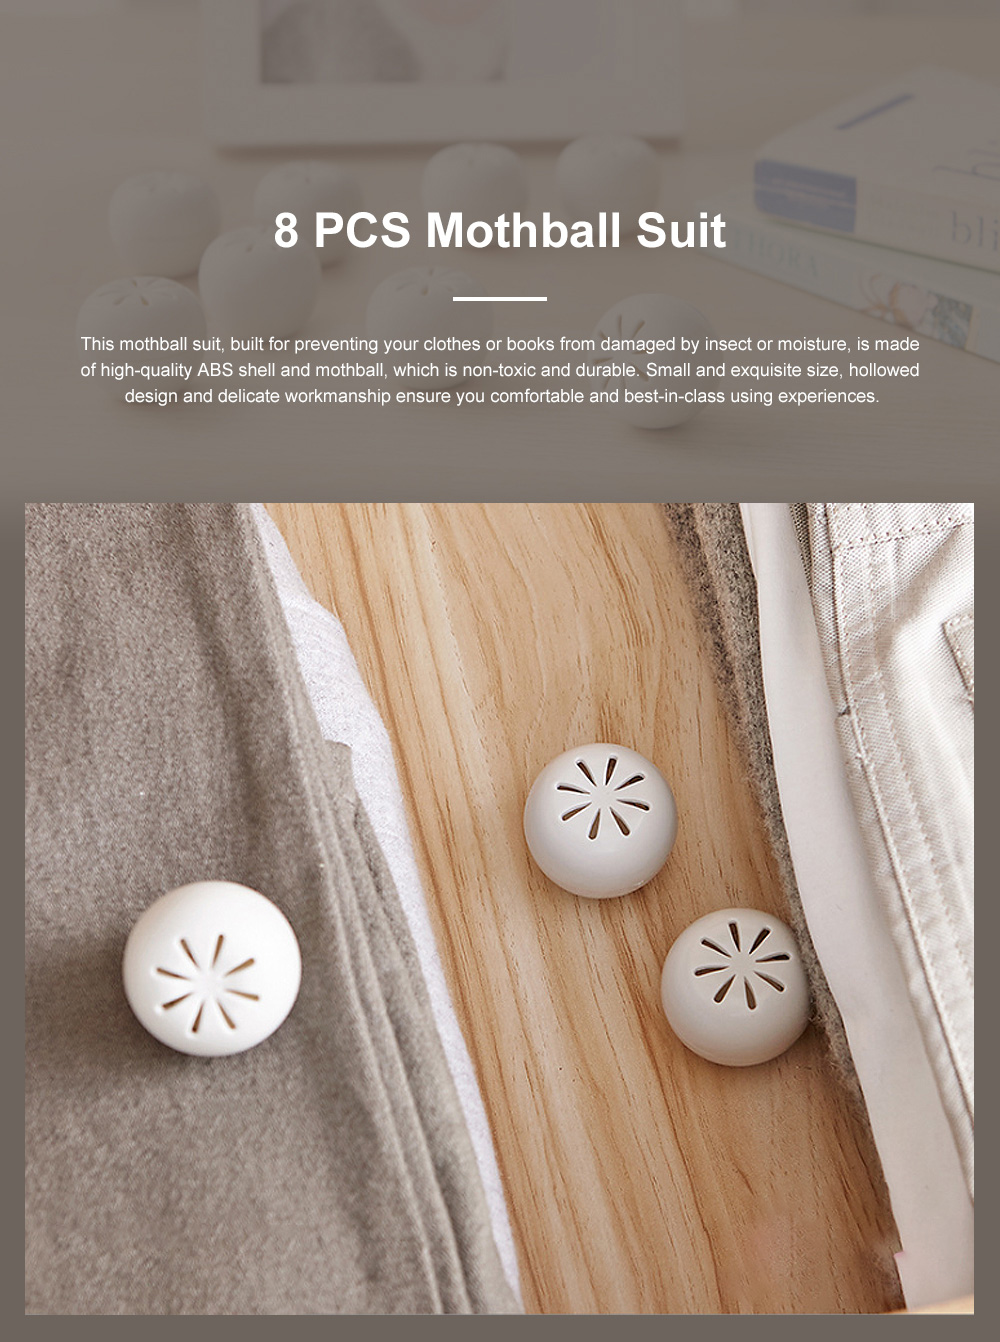 Small Exquisite Closet Wardrobe Bookcase Room Insect Prevention Mothproof Moisture-proof 8PCS Mothball Camphor Ball Set 0